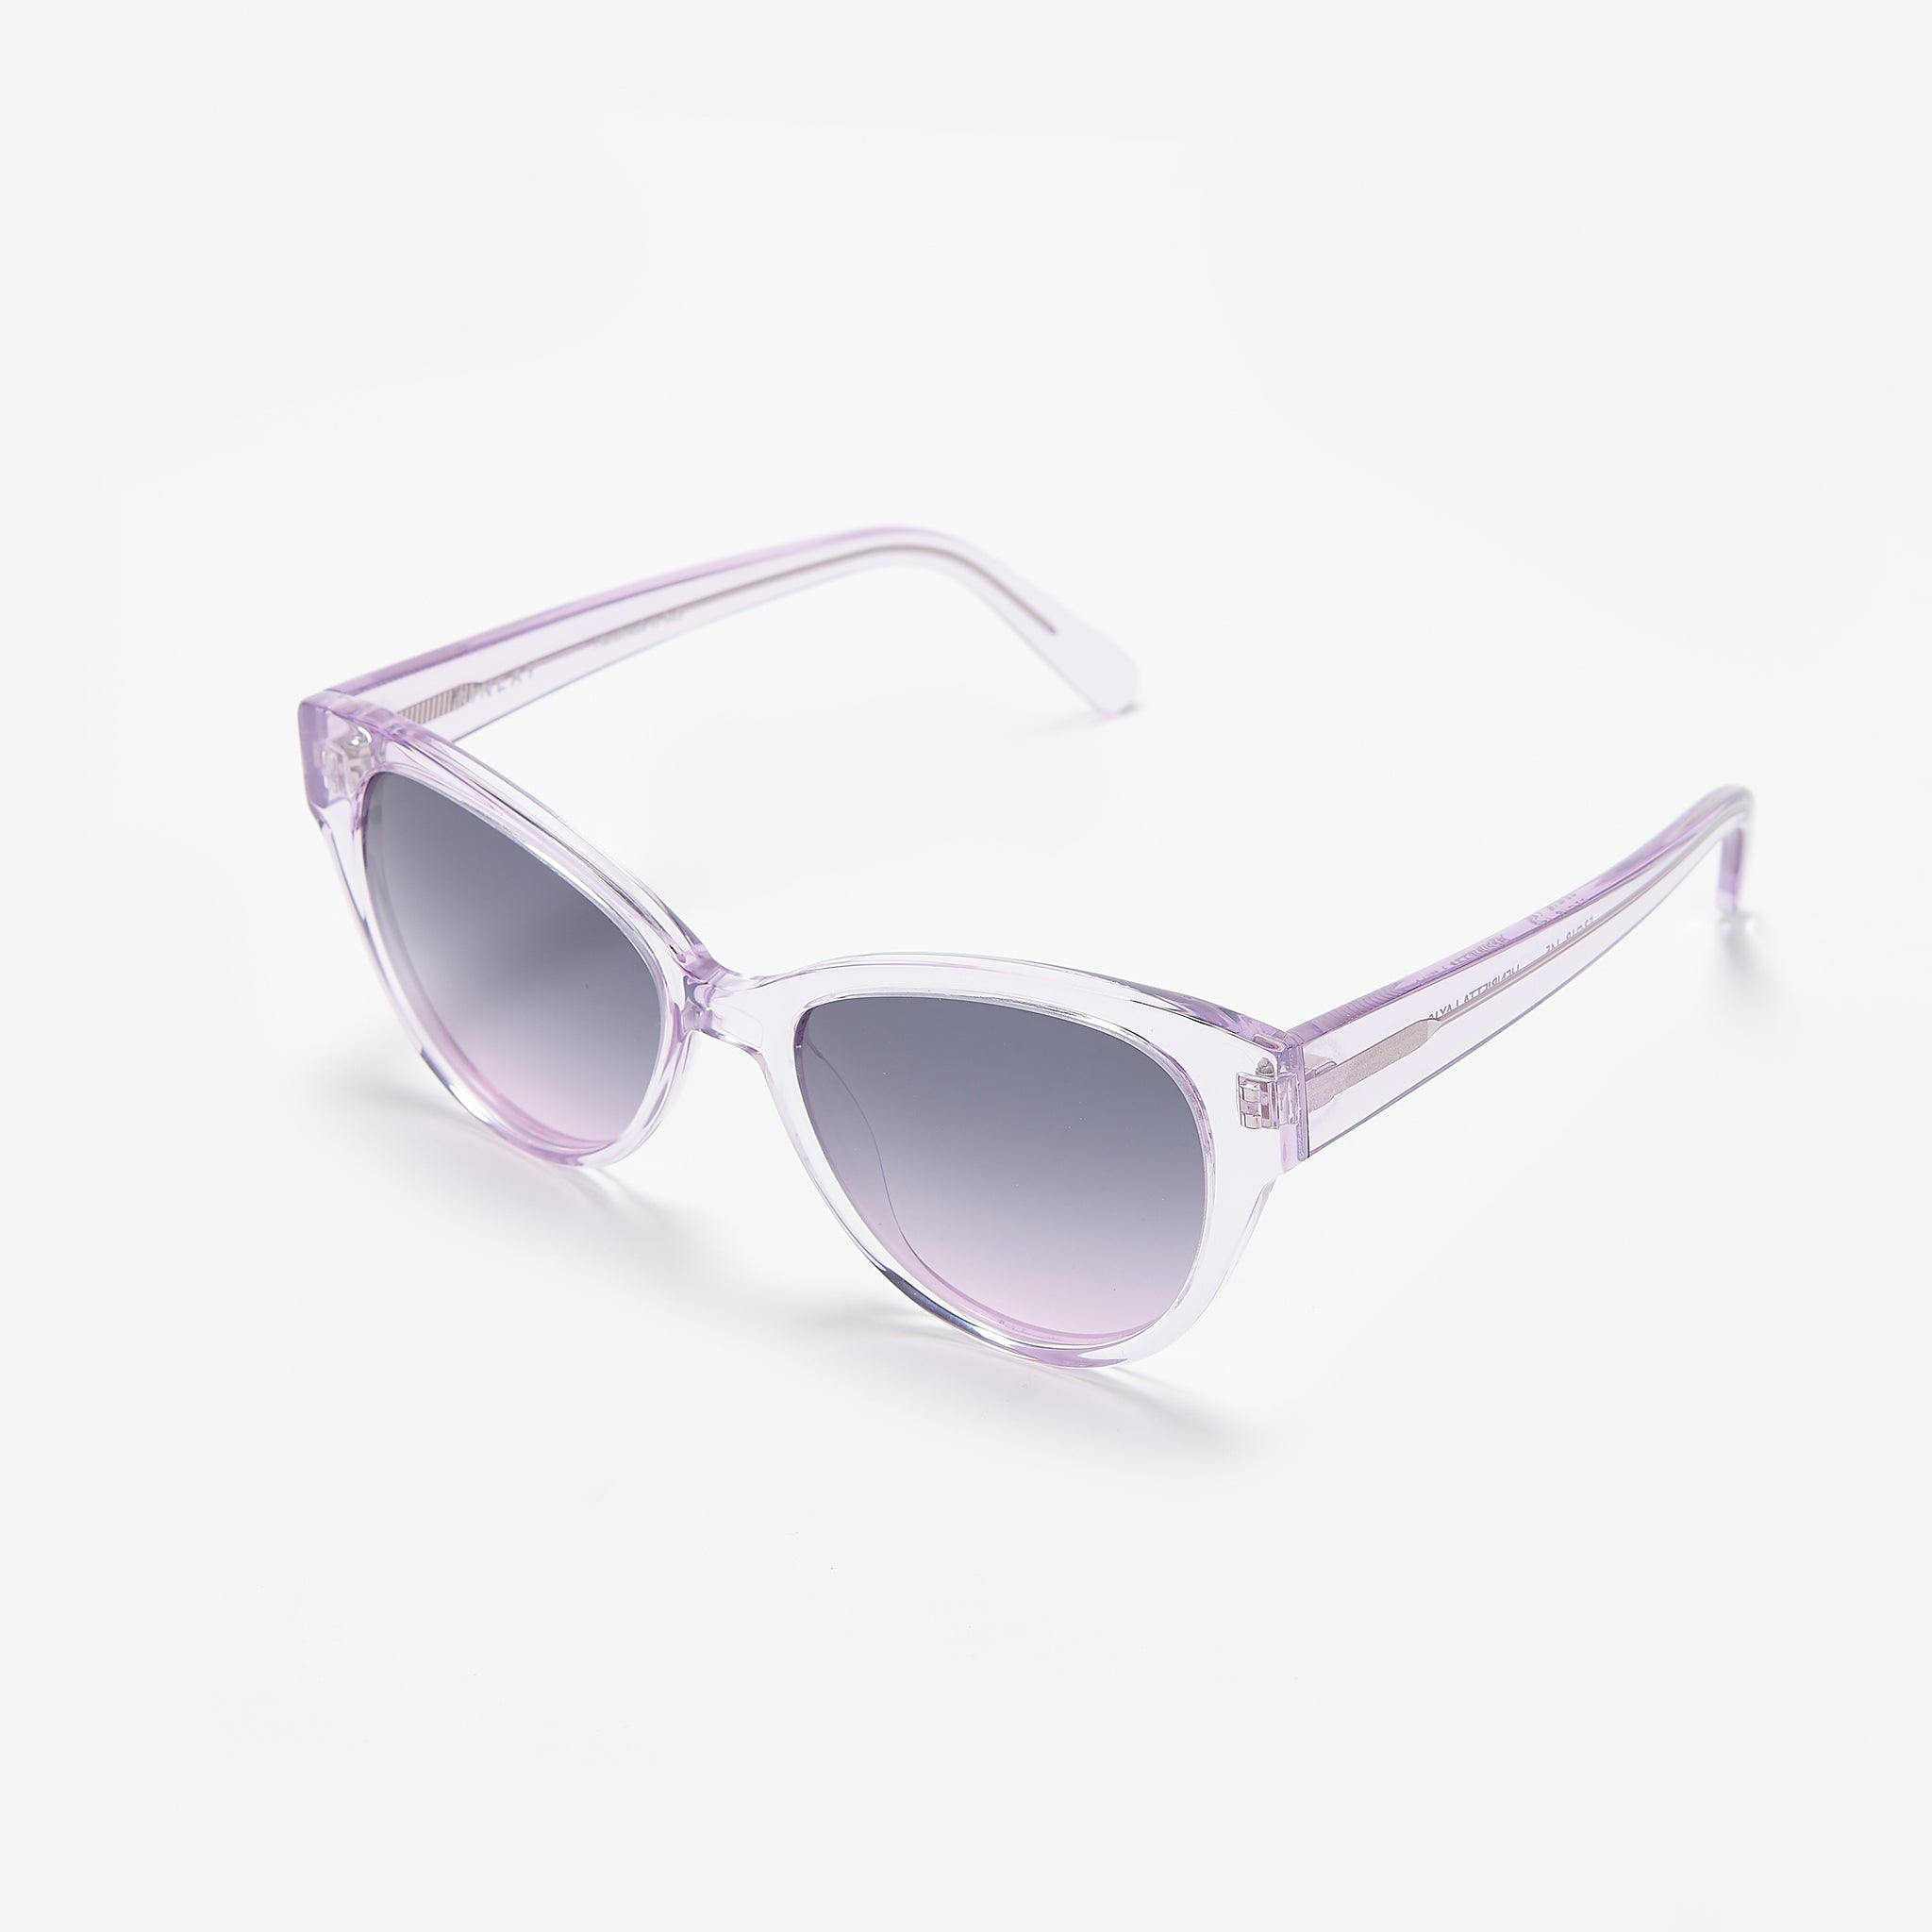 FINLAY London Henrietta Sunglasses in Lavender Grey